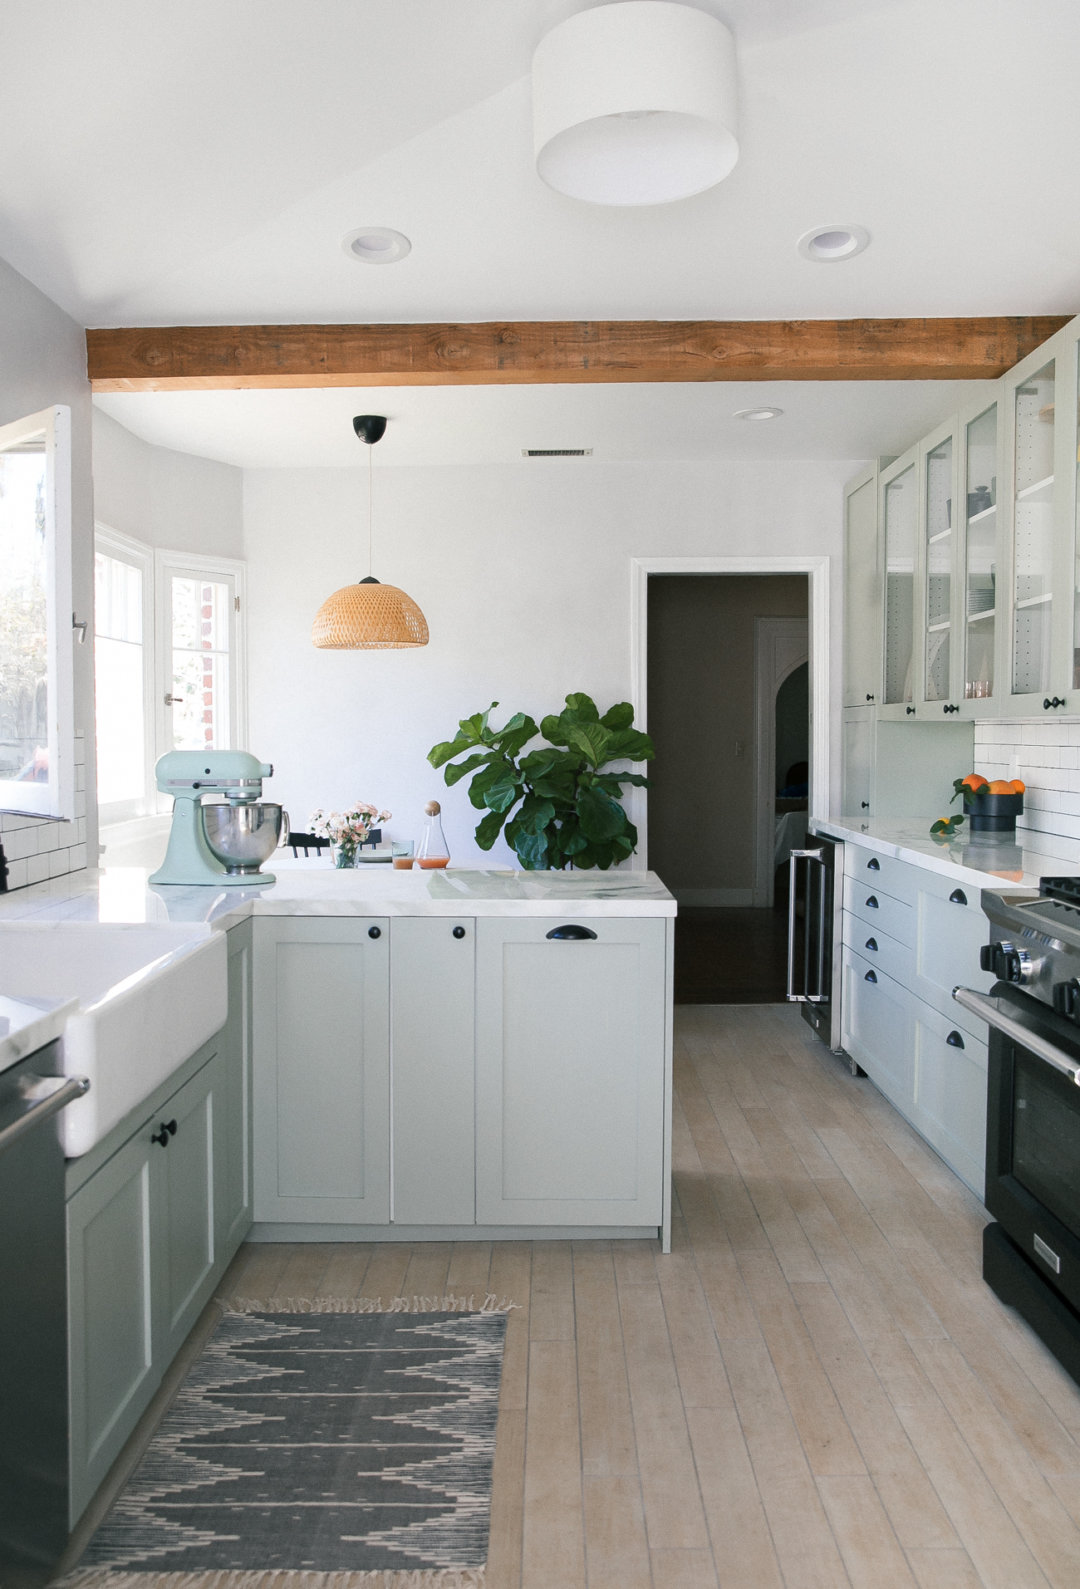 A Cozy Kitchen Renovation: Tips On Working With A Contractor For The First  Time